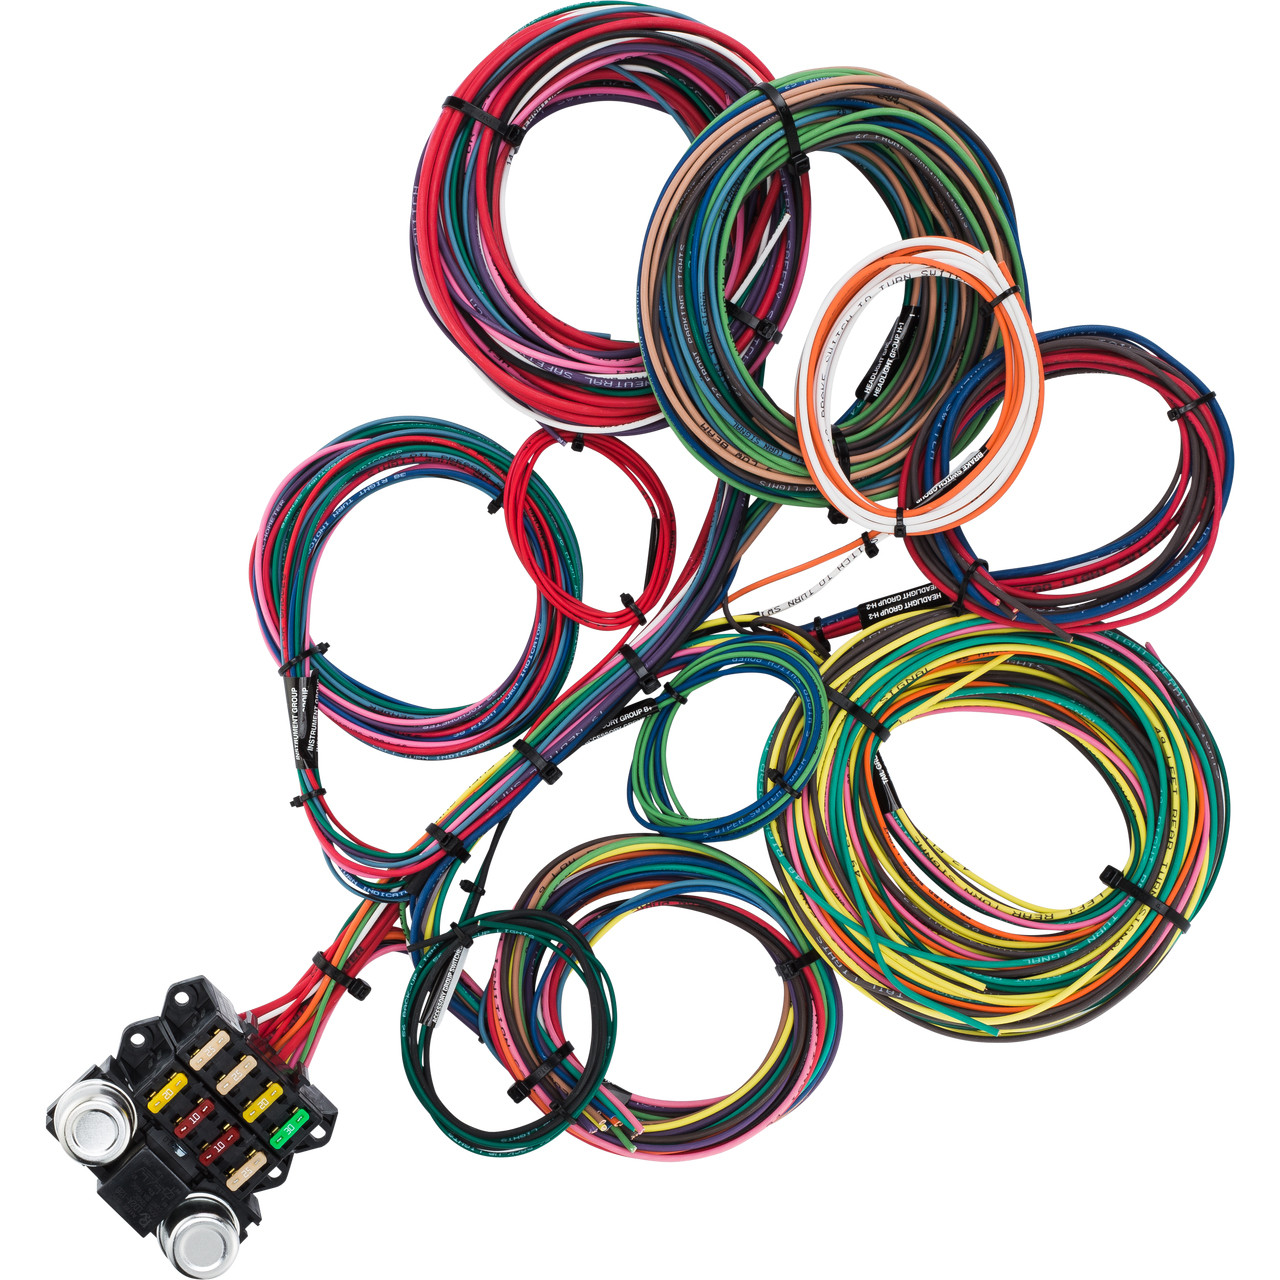 8 circuit budget wire harness kwikwire com electrify your ride8 circuit budget wire harness